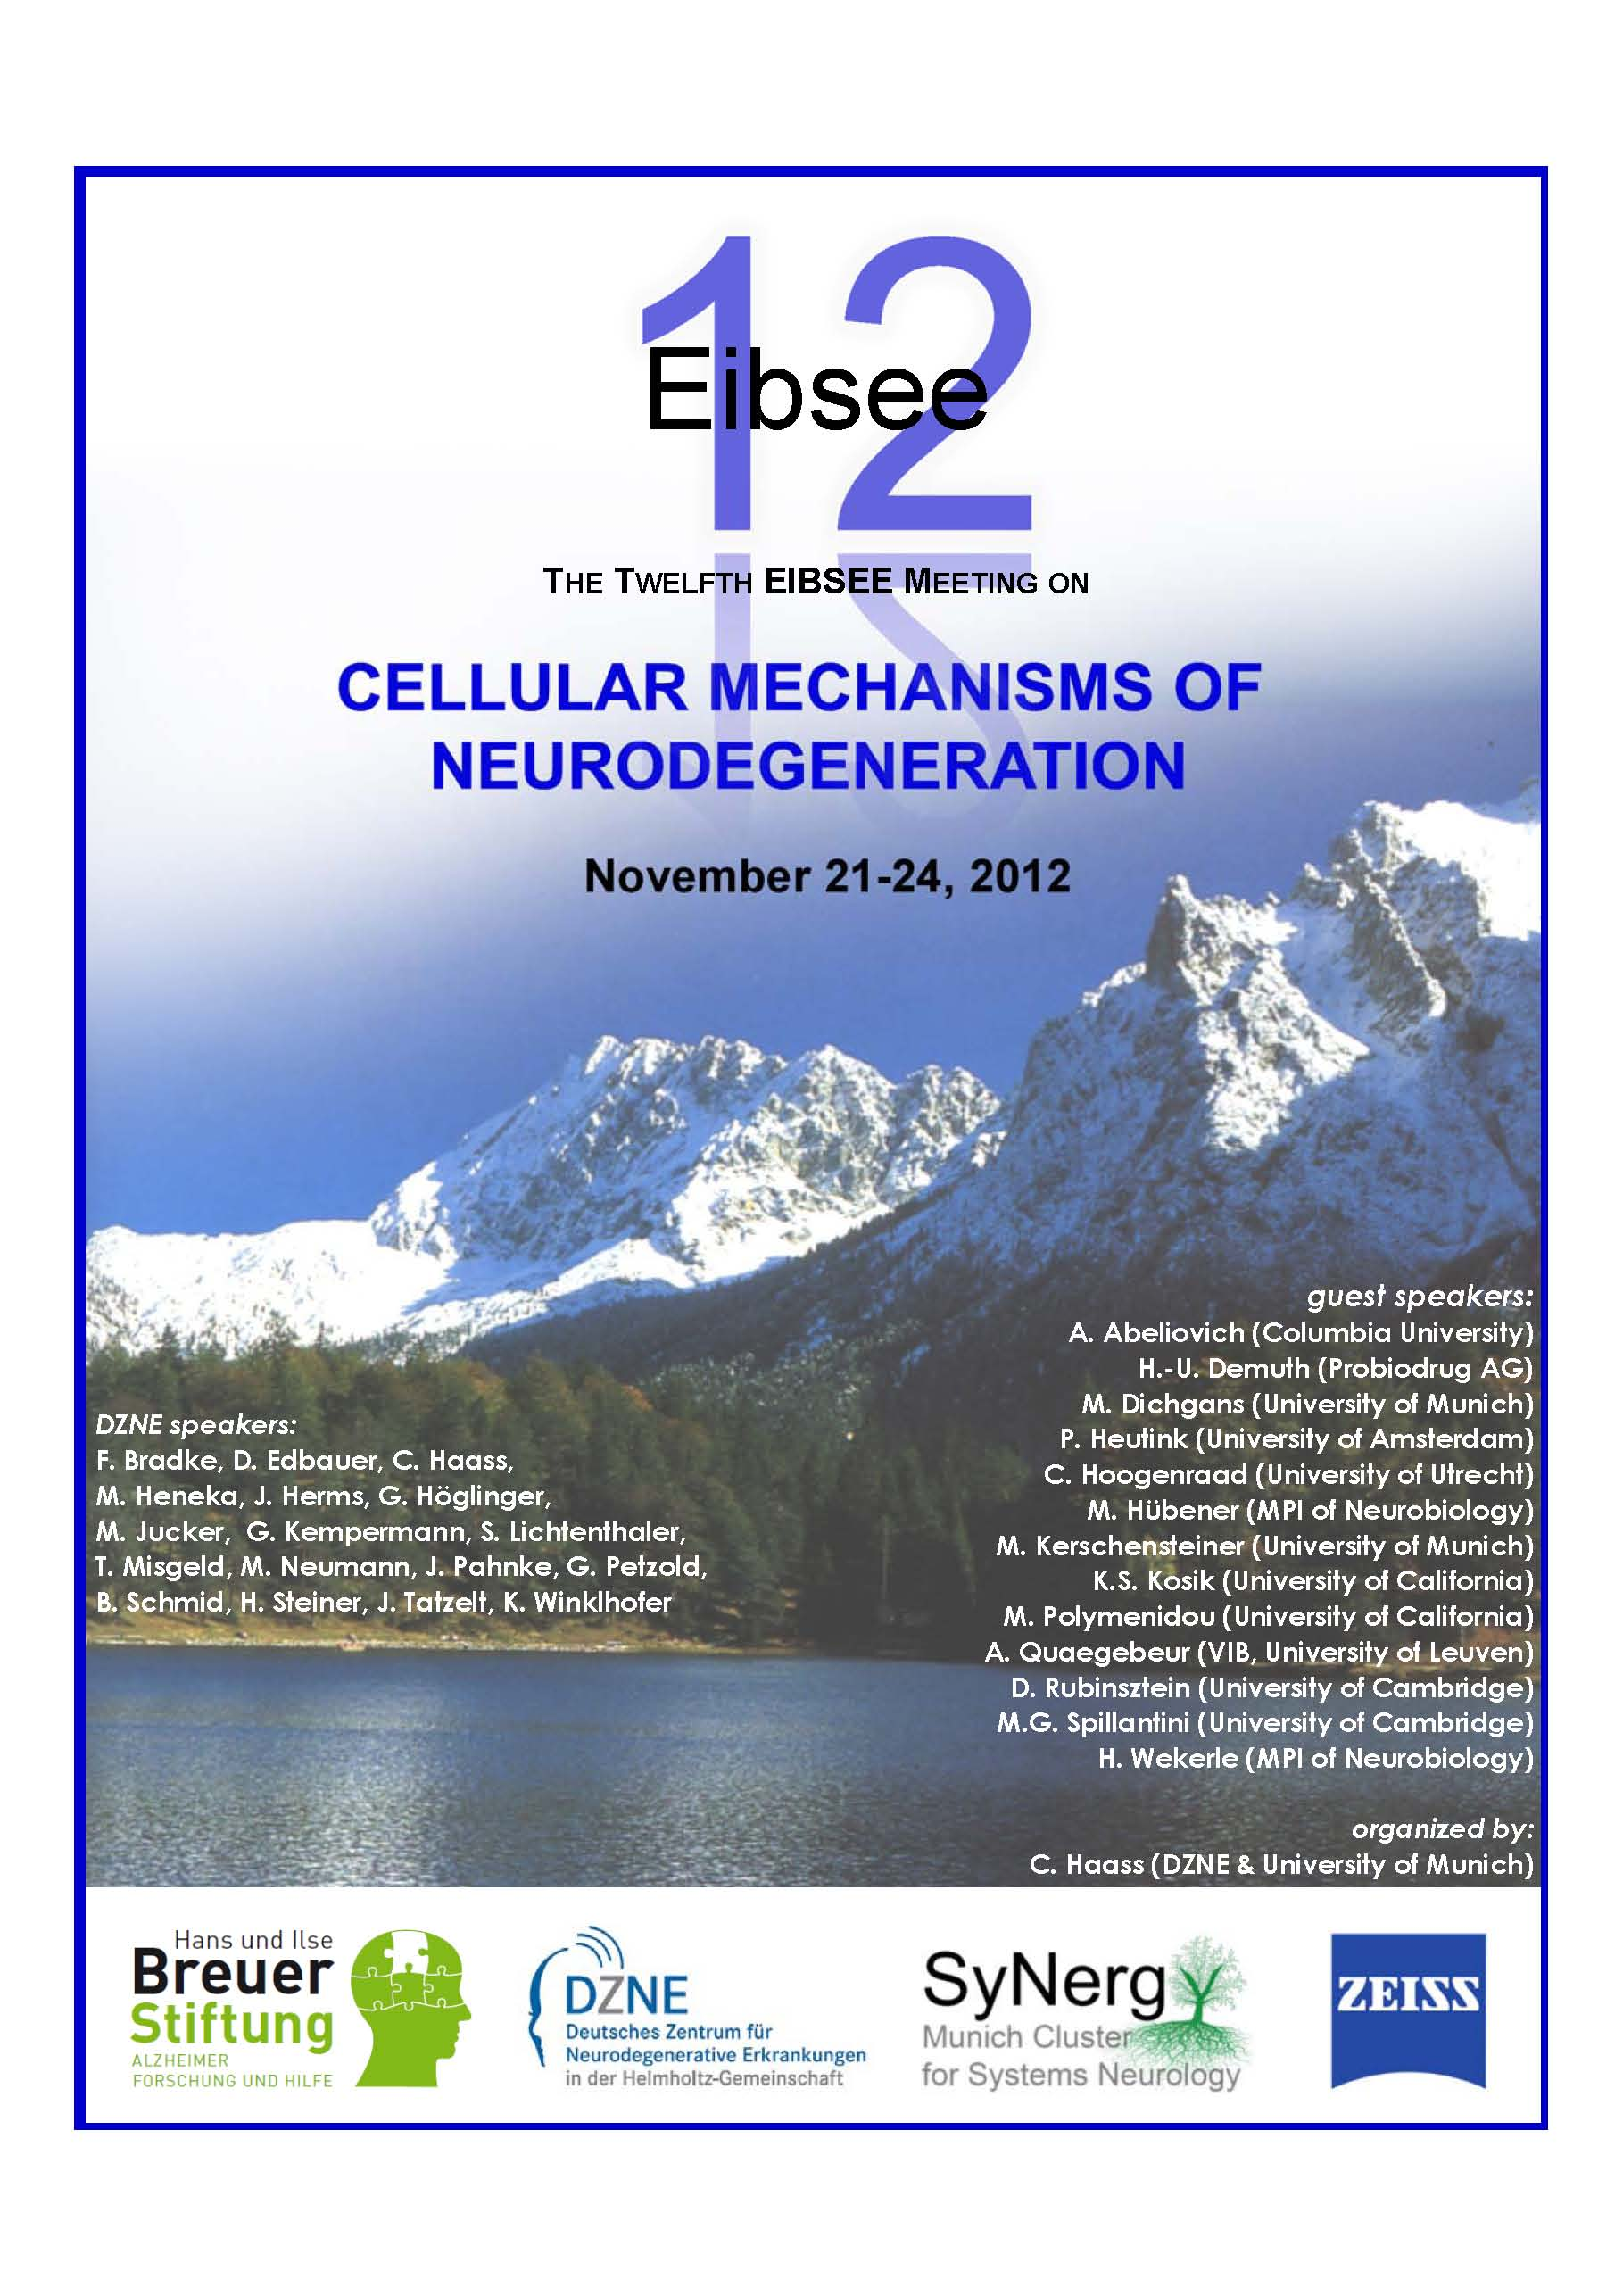 Impressions from Eibsee Meeting 2012